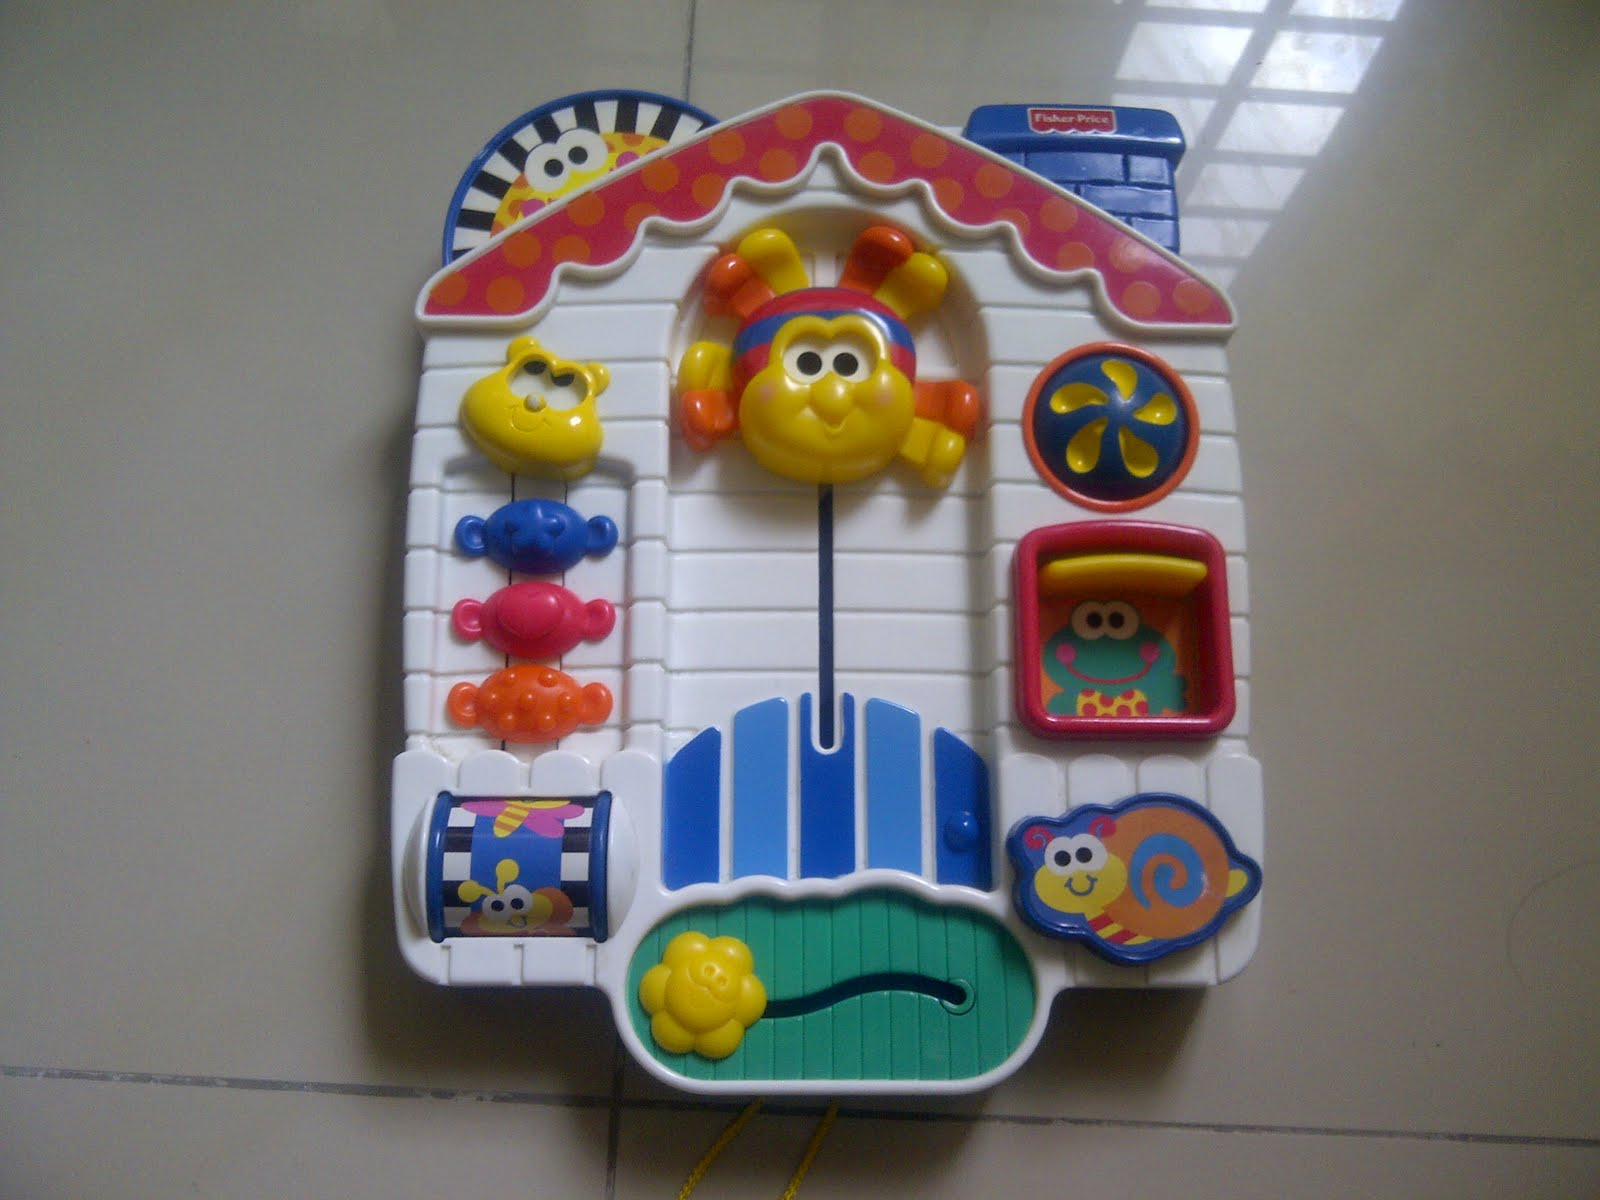 Fisher Price Crib Toys : Special toys shop fisher price eency weency spider crib toy